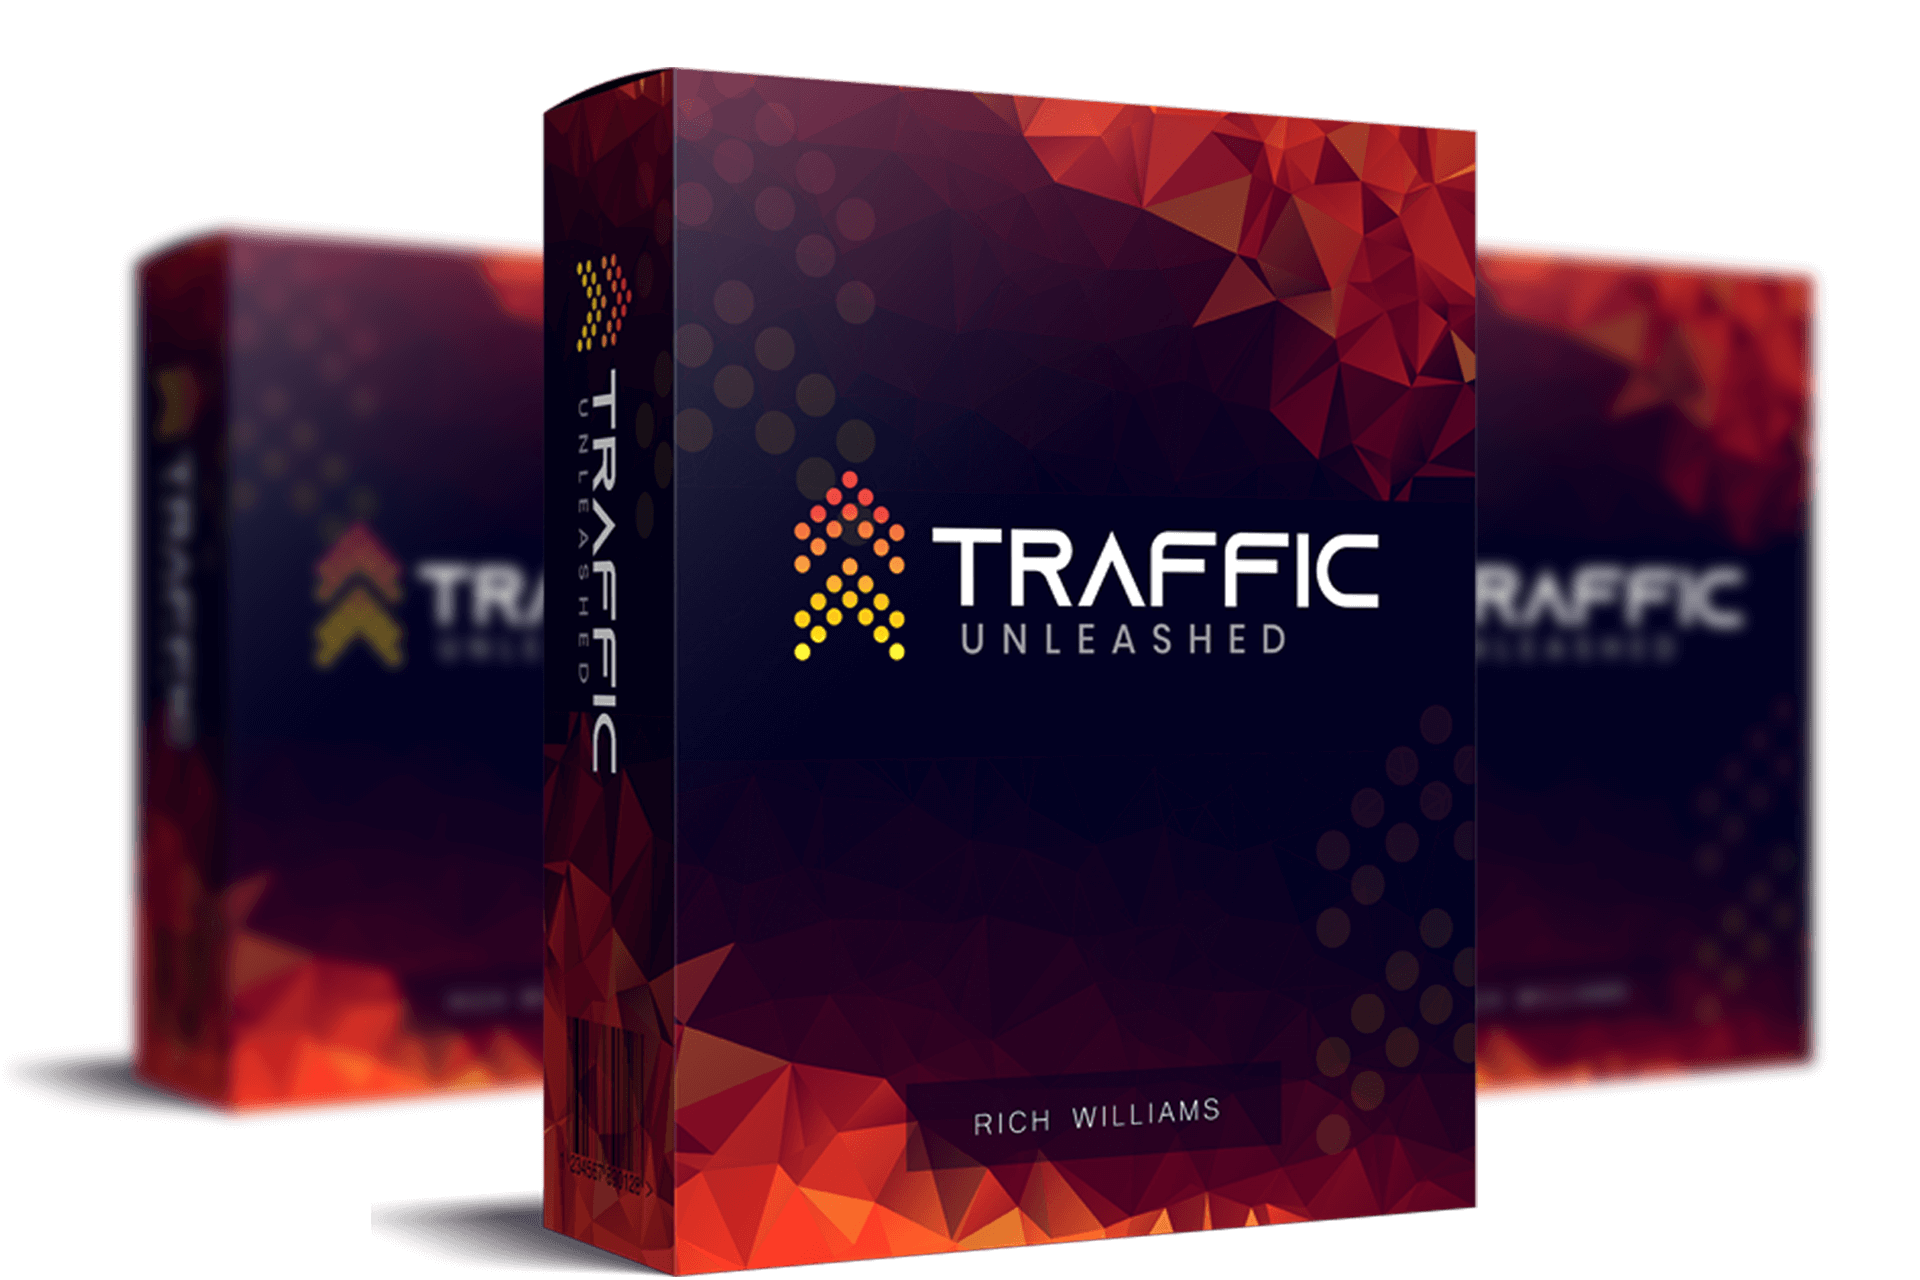 [GET] Traffic Unleashed by Rich Williams and Yves Kouyo Free Download